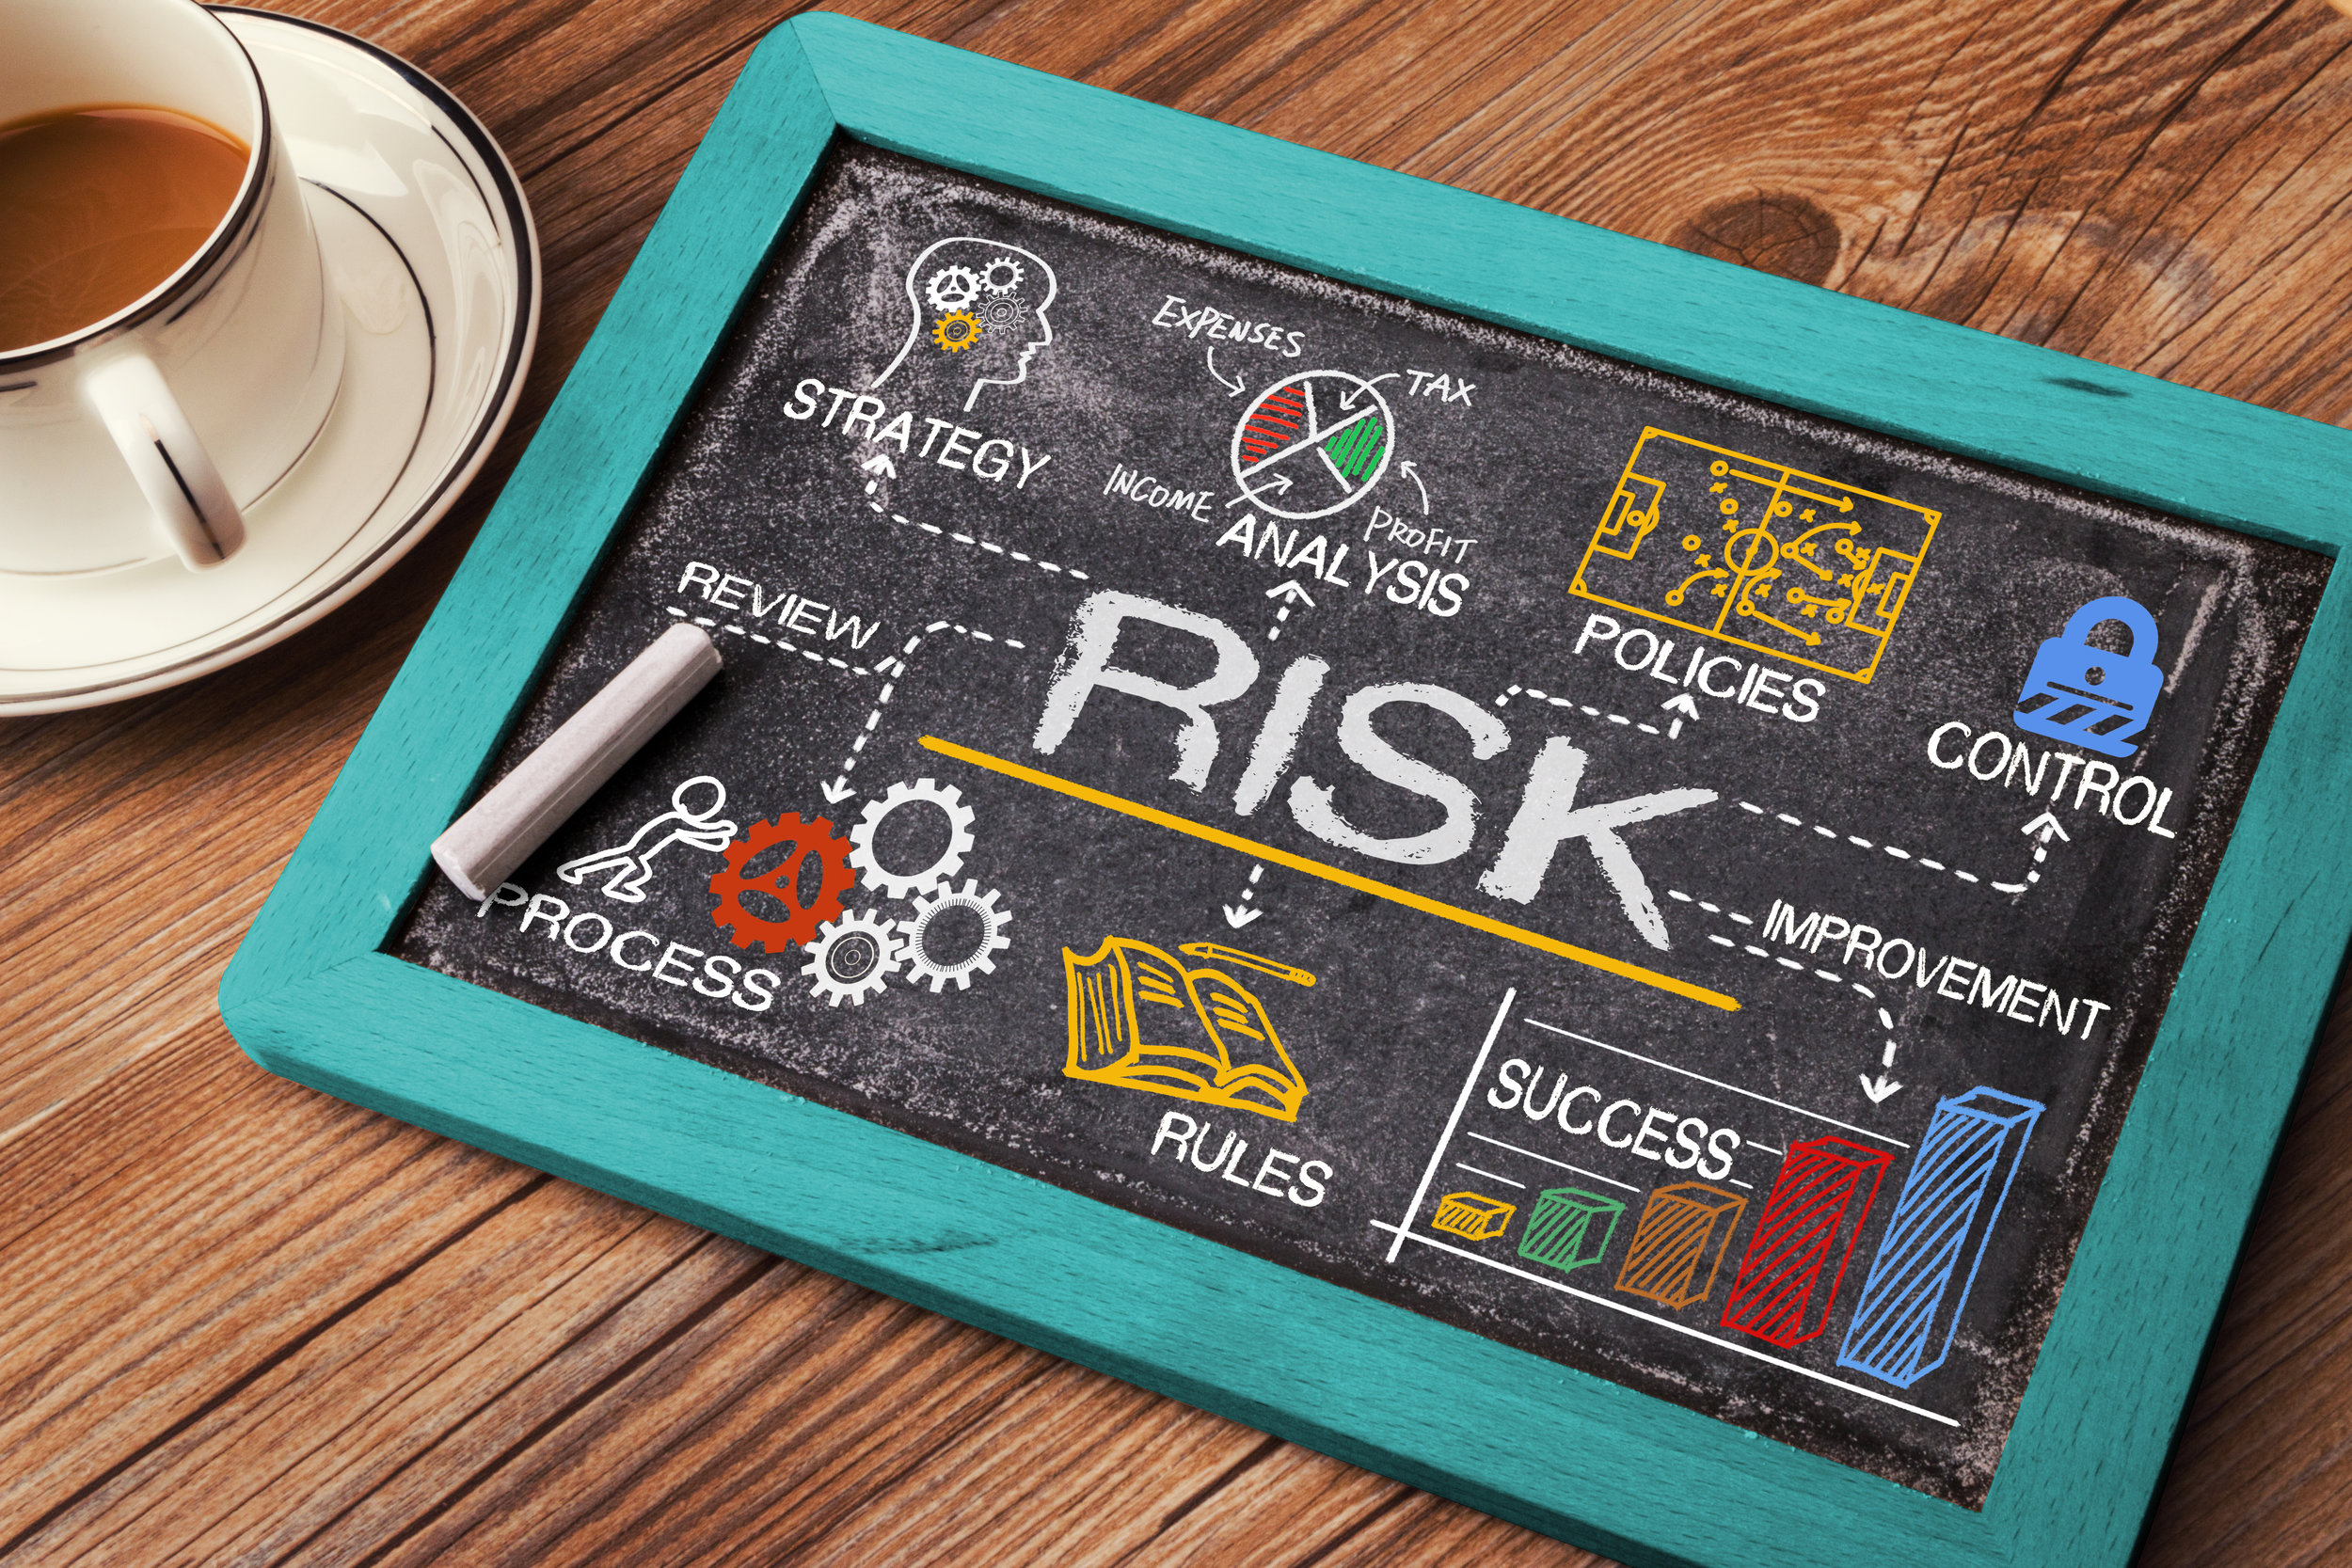 Businesses that risk Unlimited liability include: